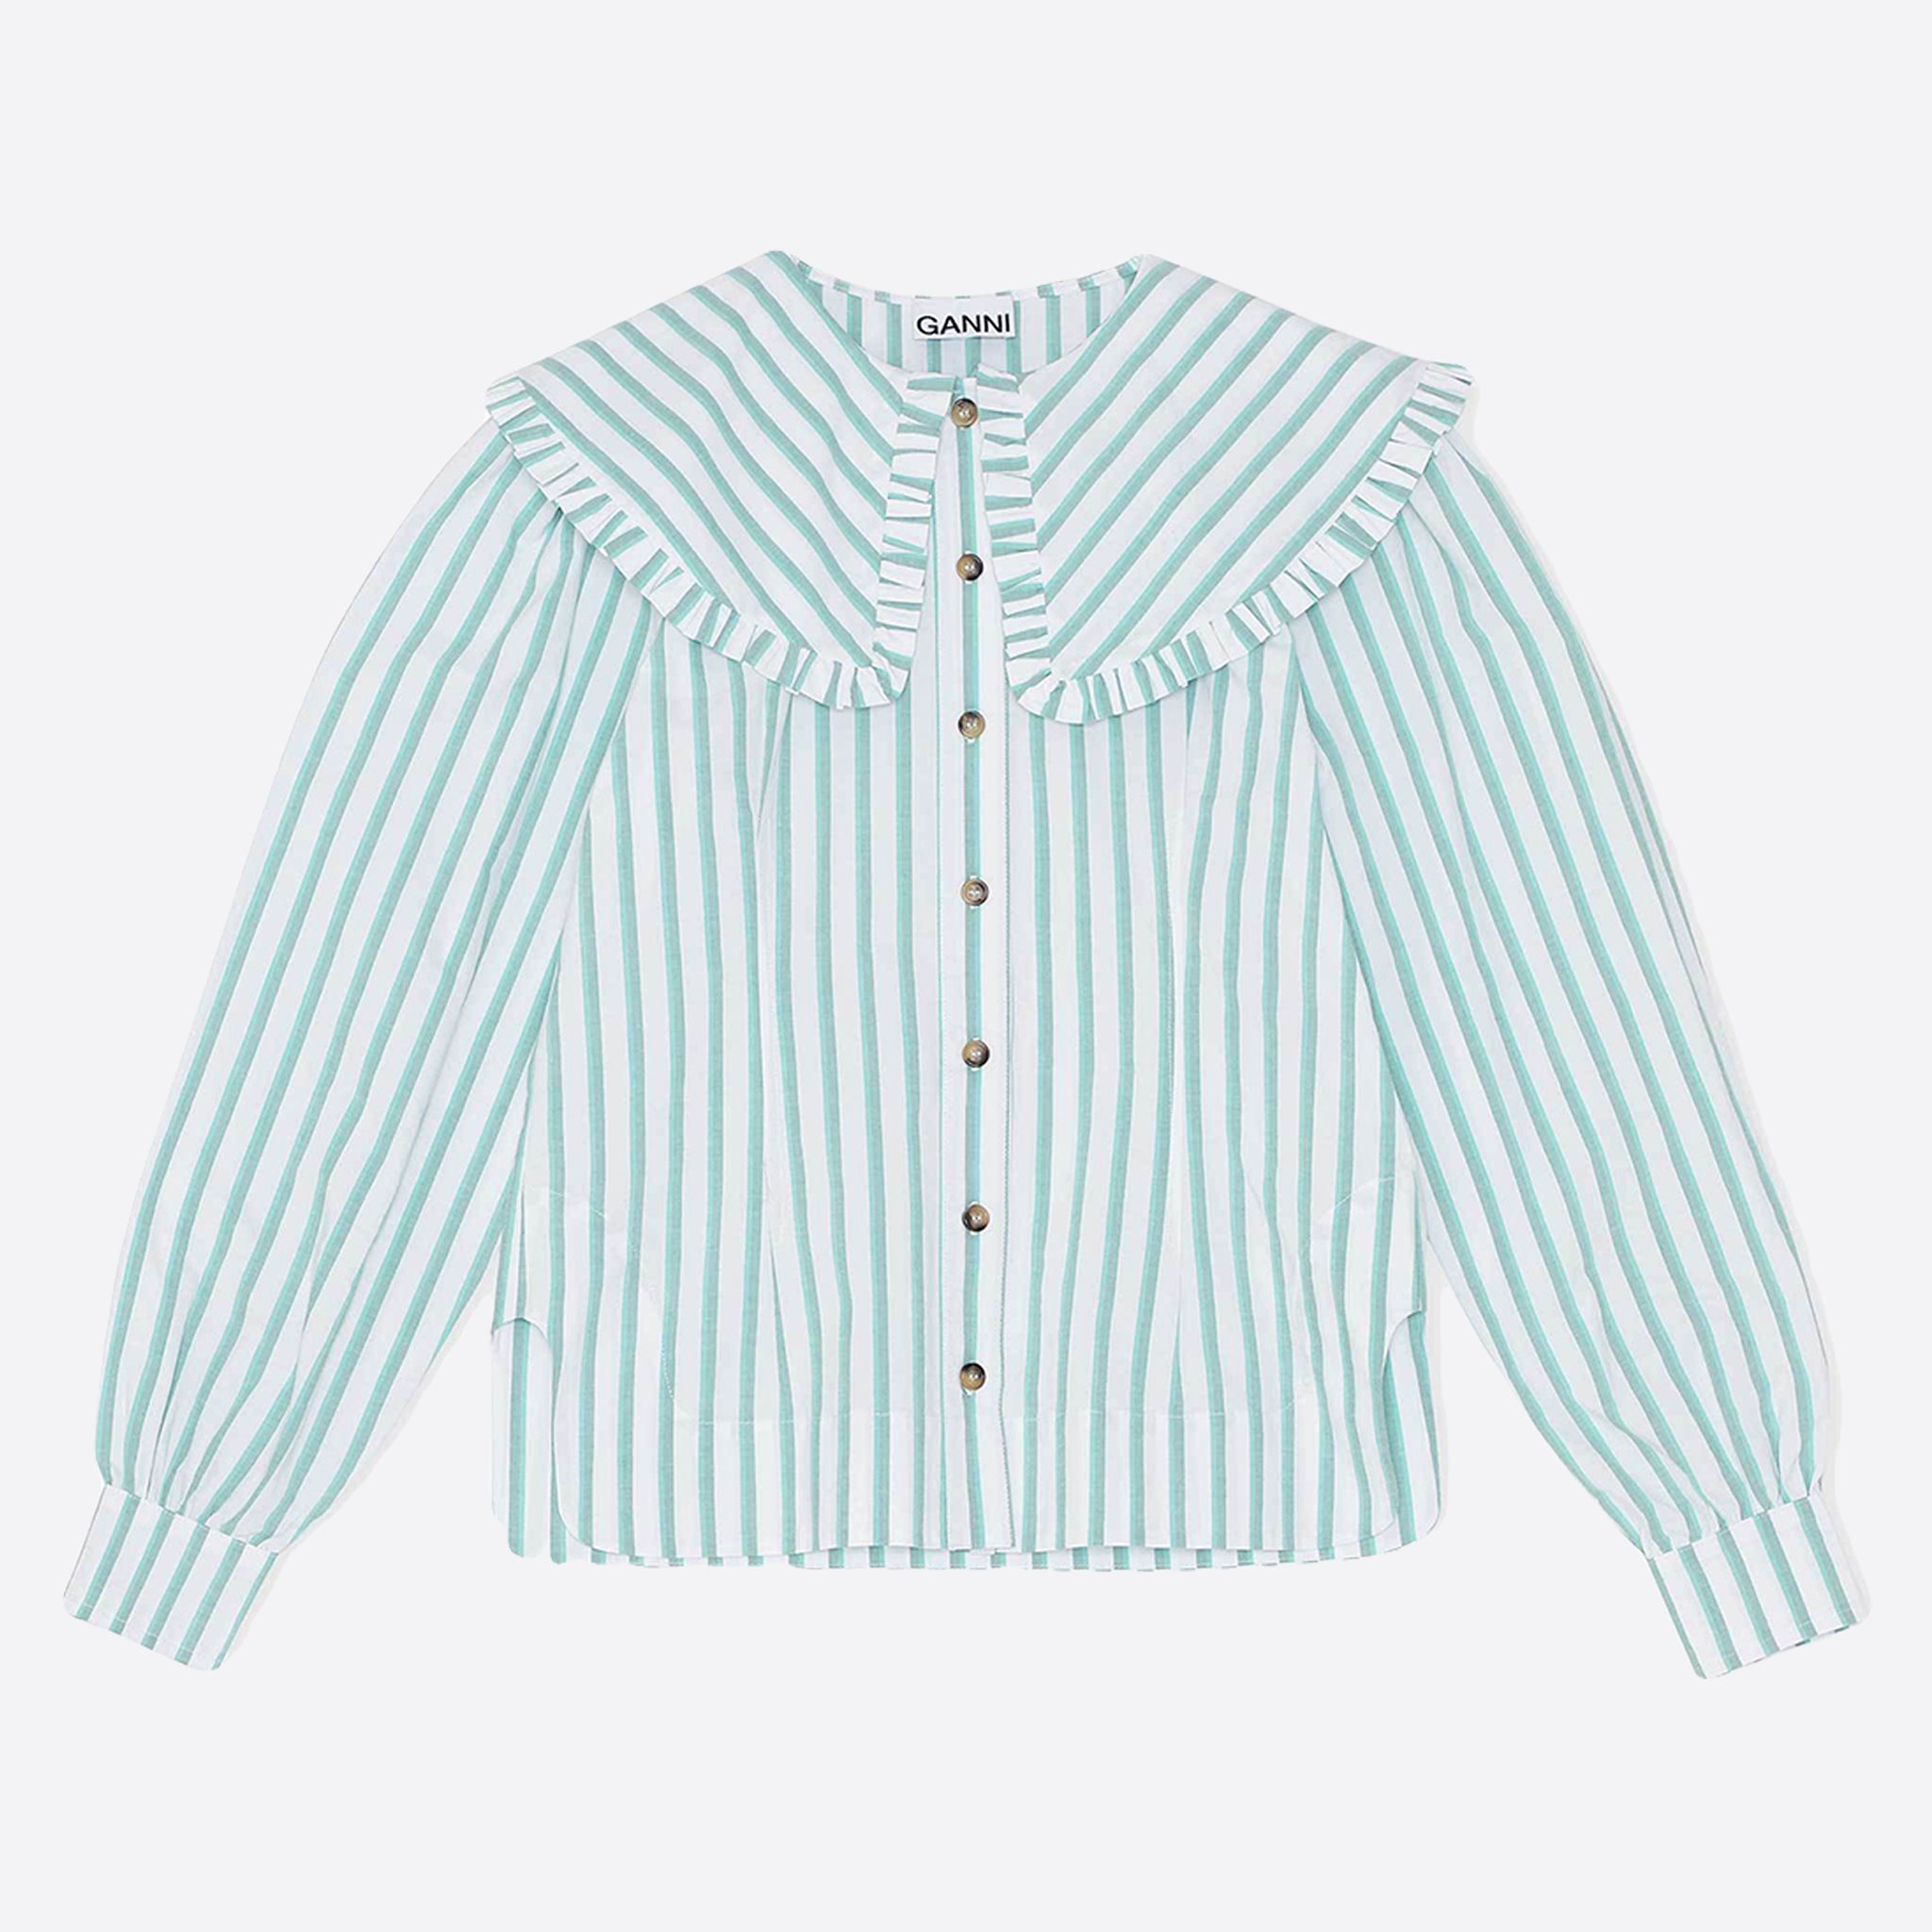 Ganni Feathery Cotton Shirt in Kalamata Stripe